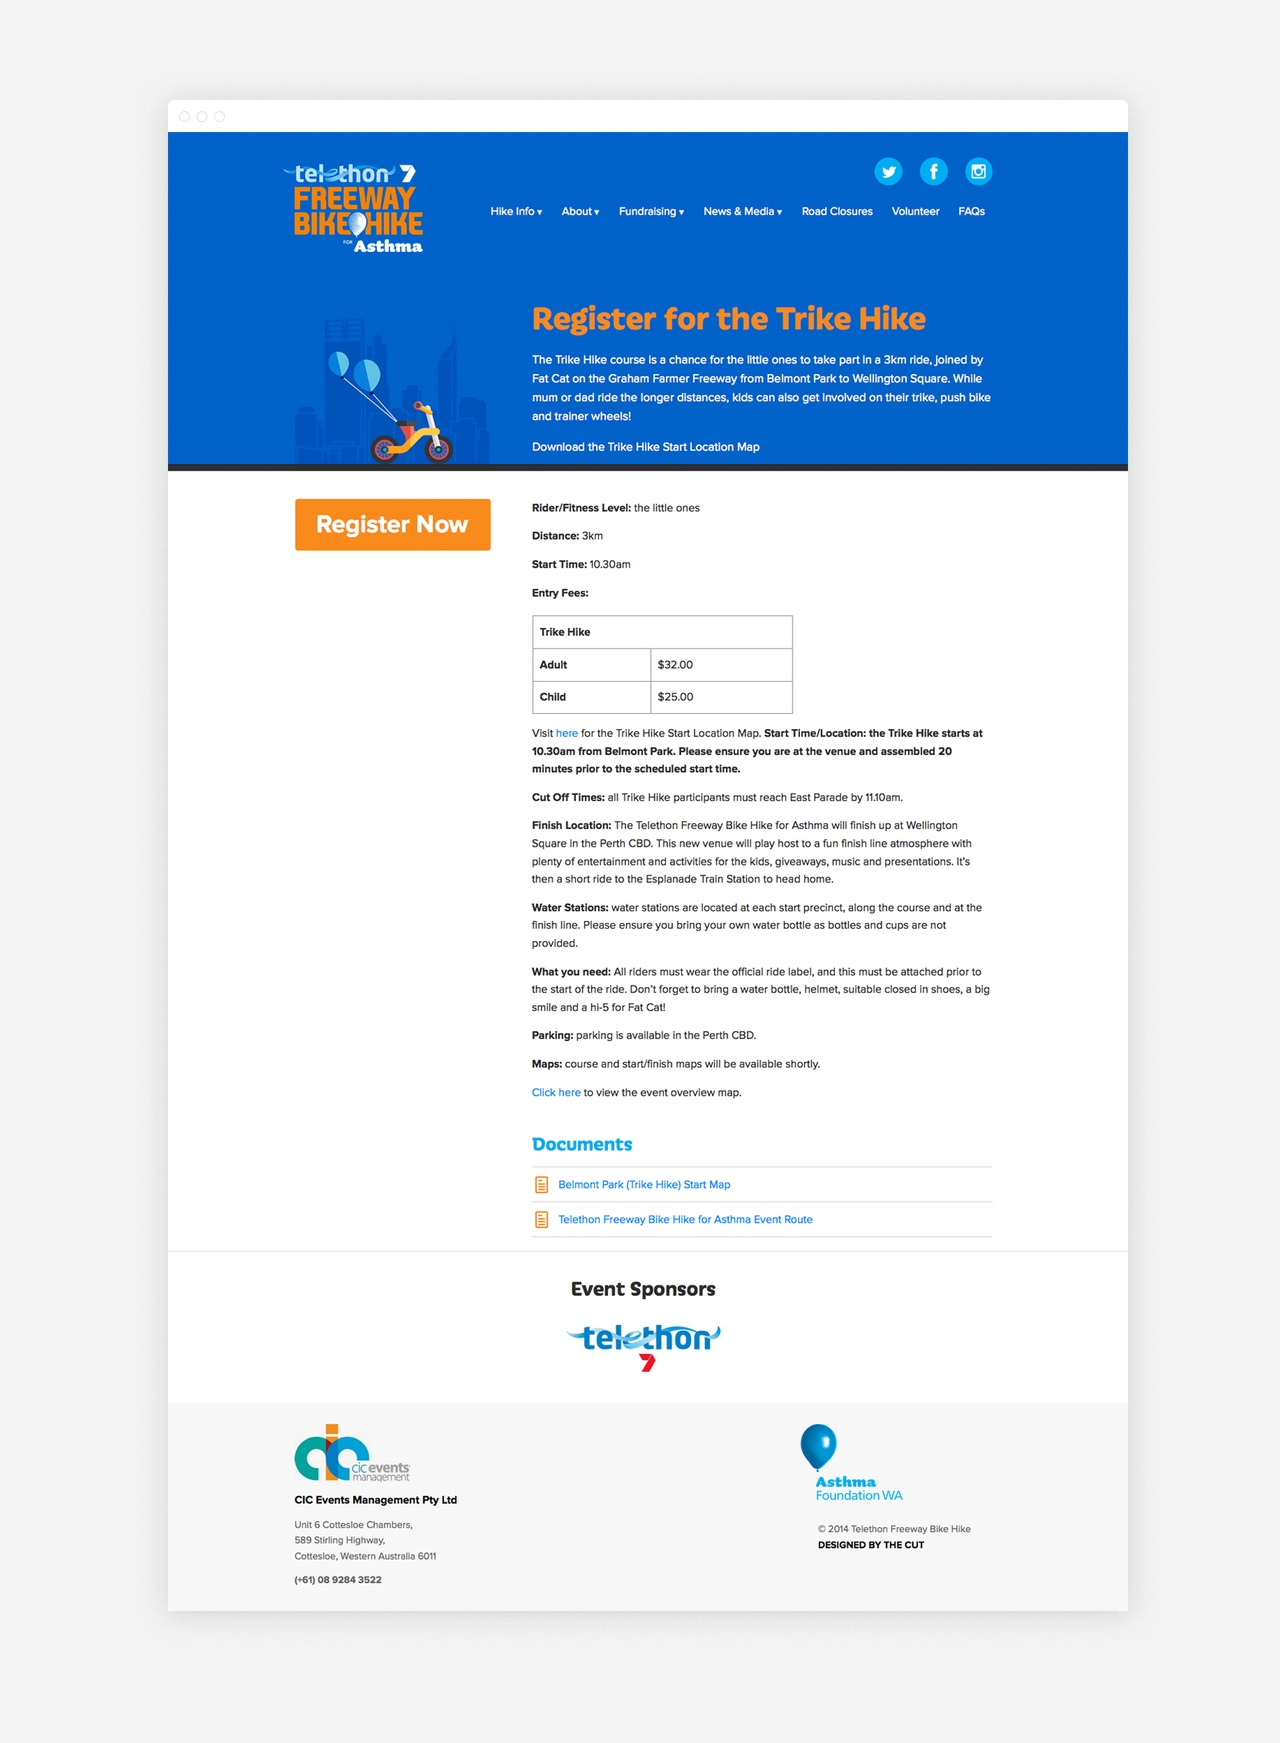 The Registration Page makes it easy to get involved